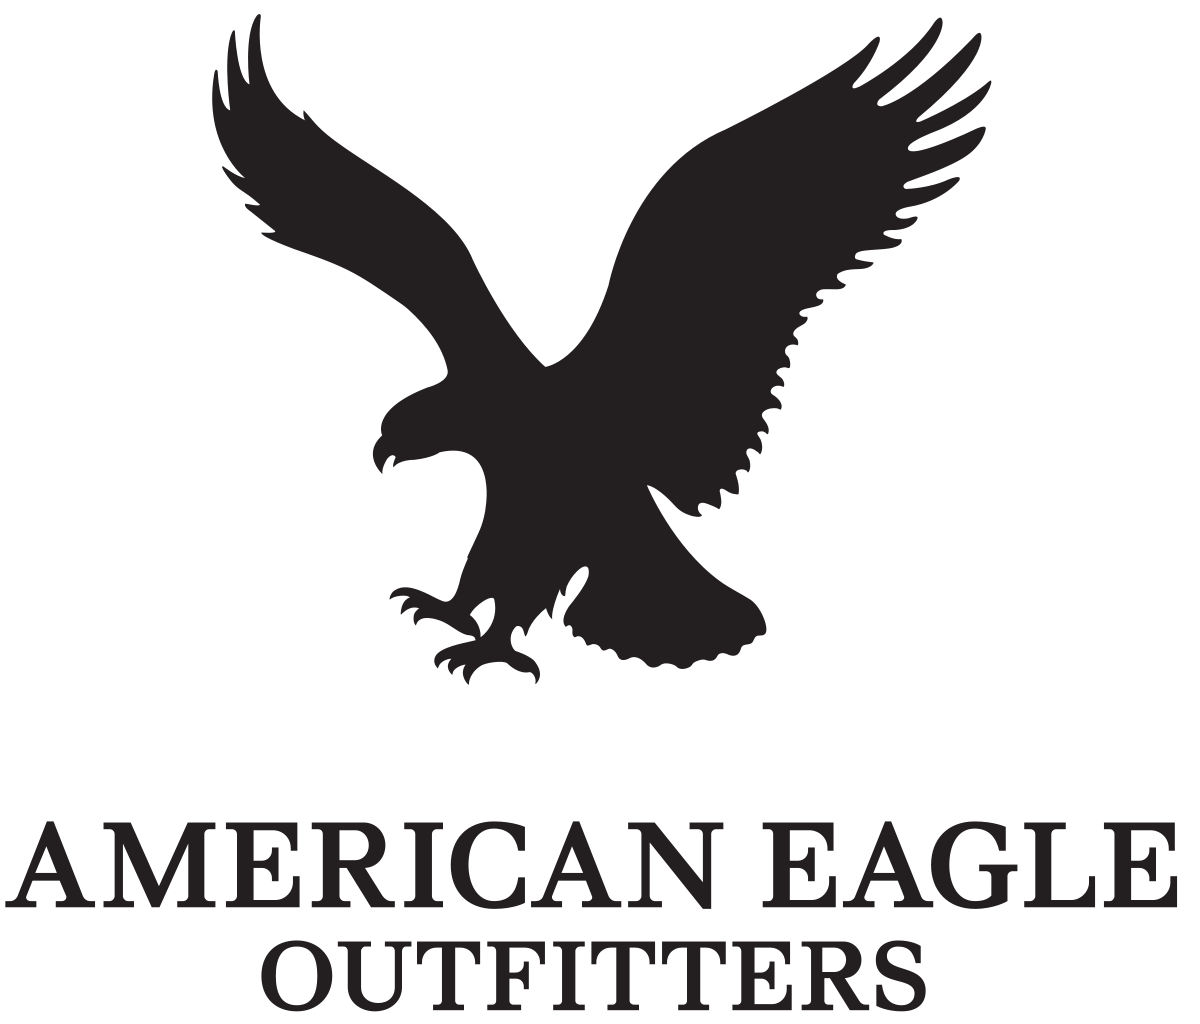 American eagle logo png. Outfitters wikipedia